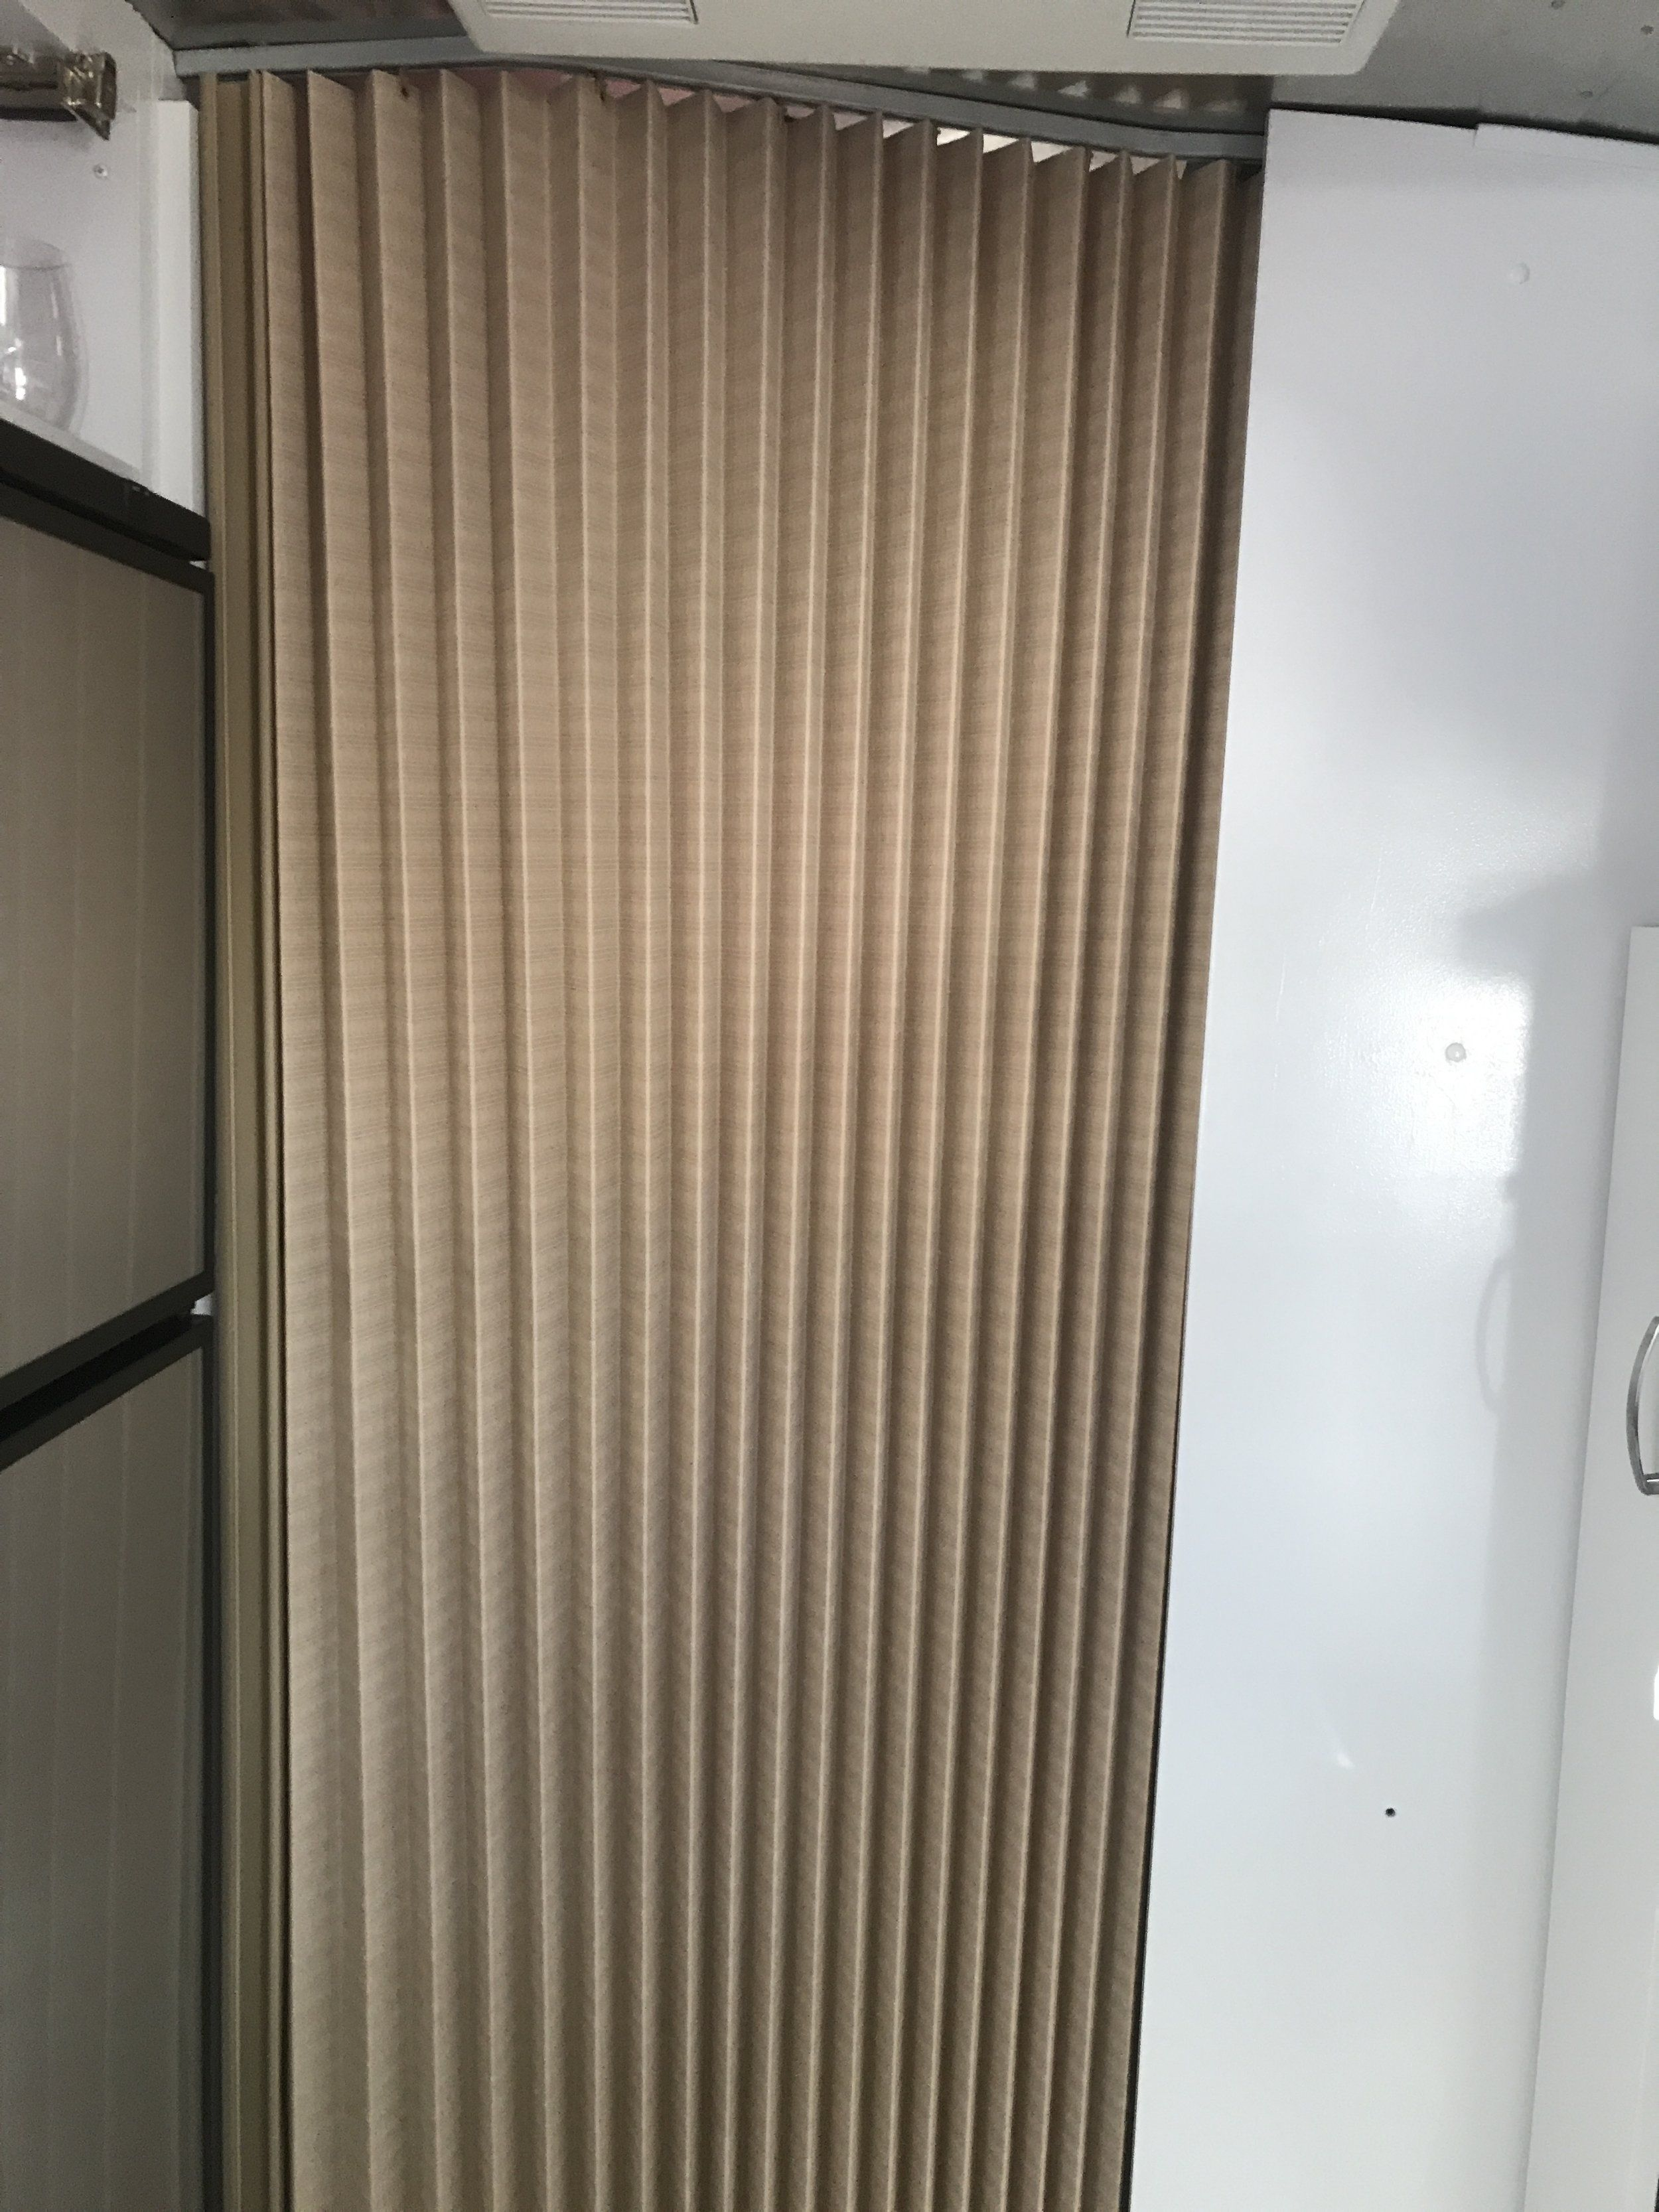 Replacing Our Accordion Screen With A Curtain In 2020 Airstream